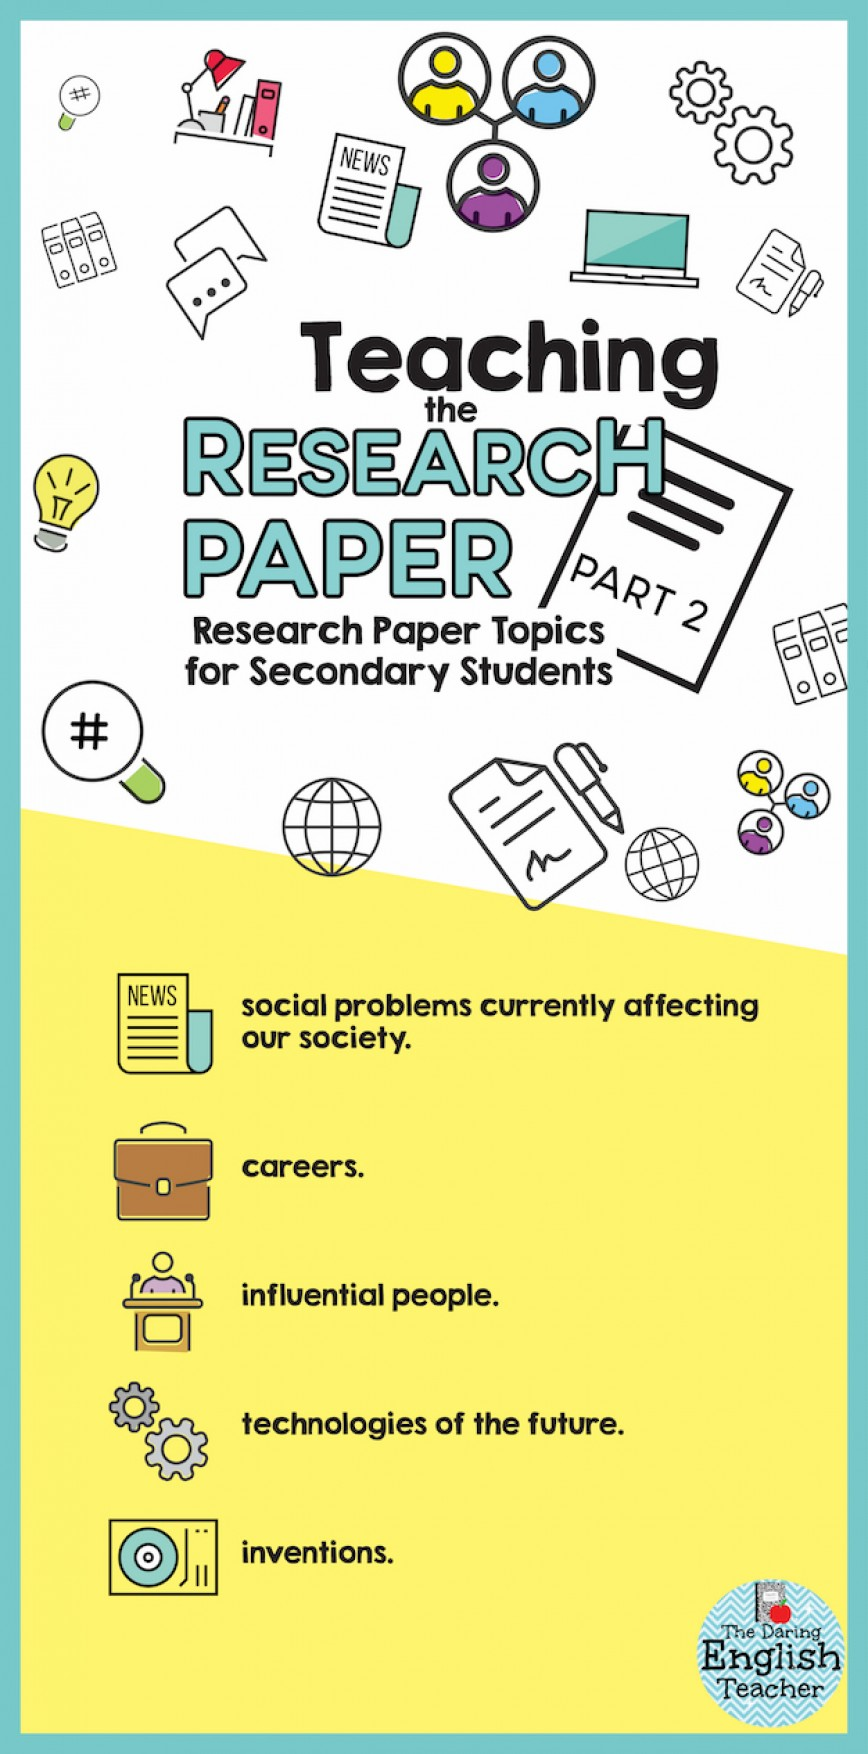 020 Infographic2bp22b2 Research Paper Topic For Unusual A Topics In Criminal Justice Psychology Business Administration 868